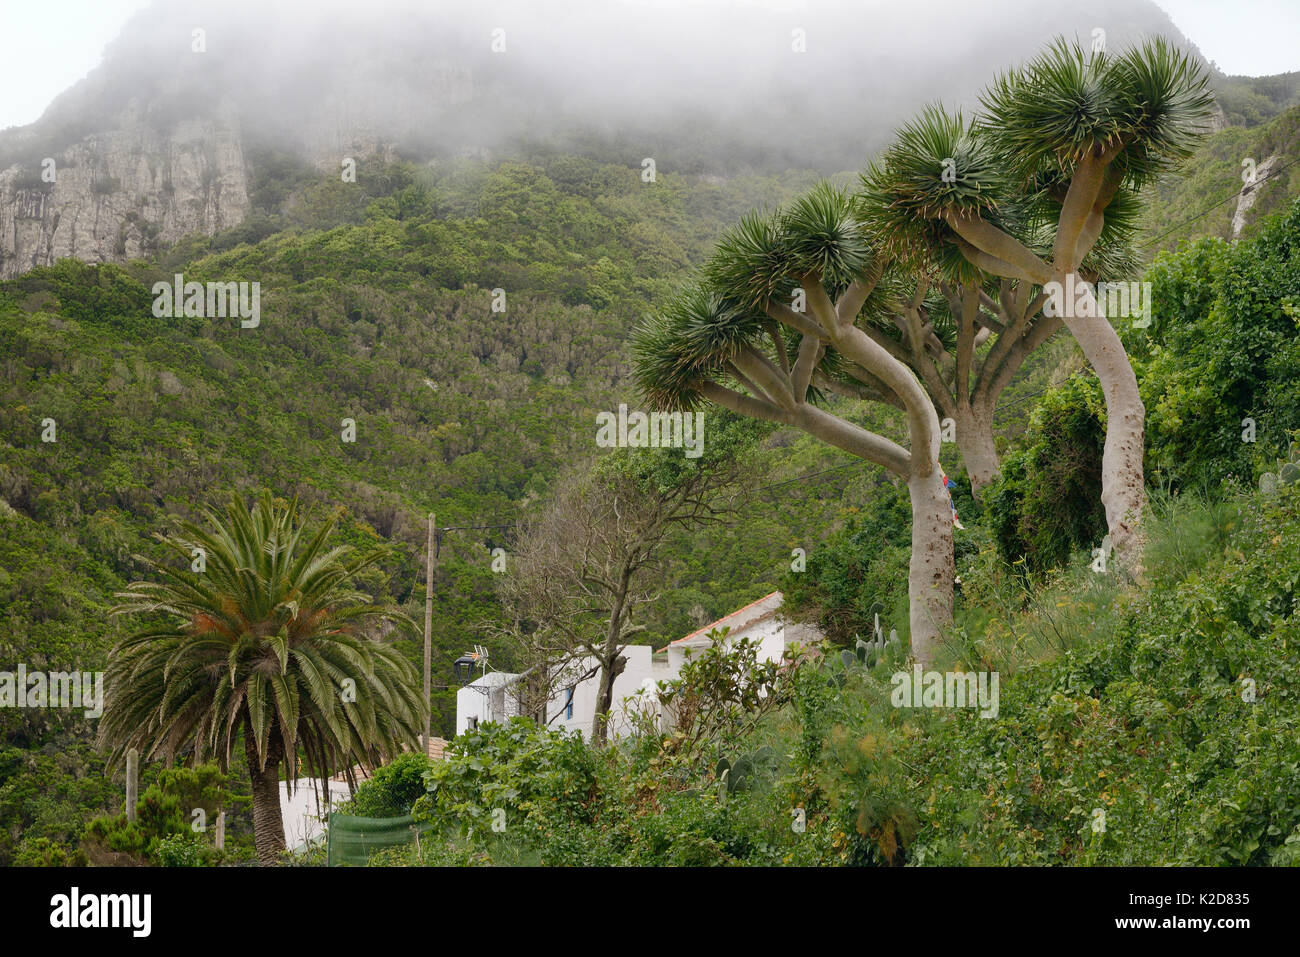 Canary Islands Date Palm (Phoenix canariensis) and Canary Islands dragon tree / Drago (Dracaena draco), a slow growing - Stock Image